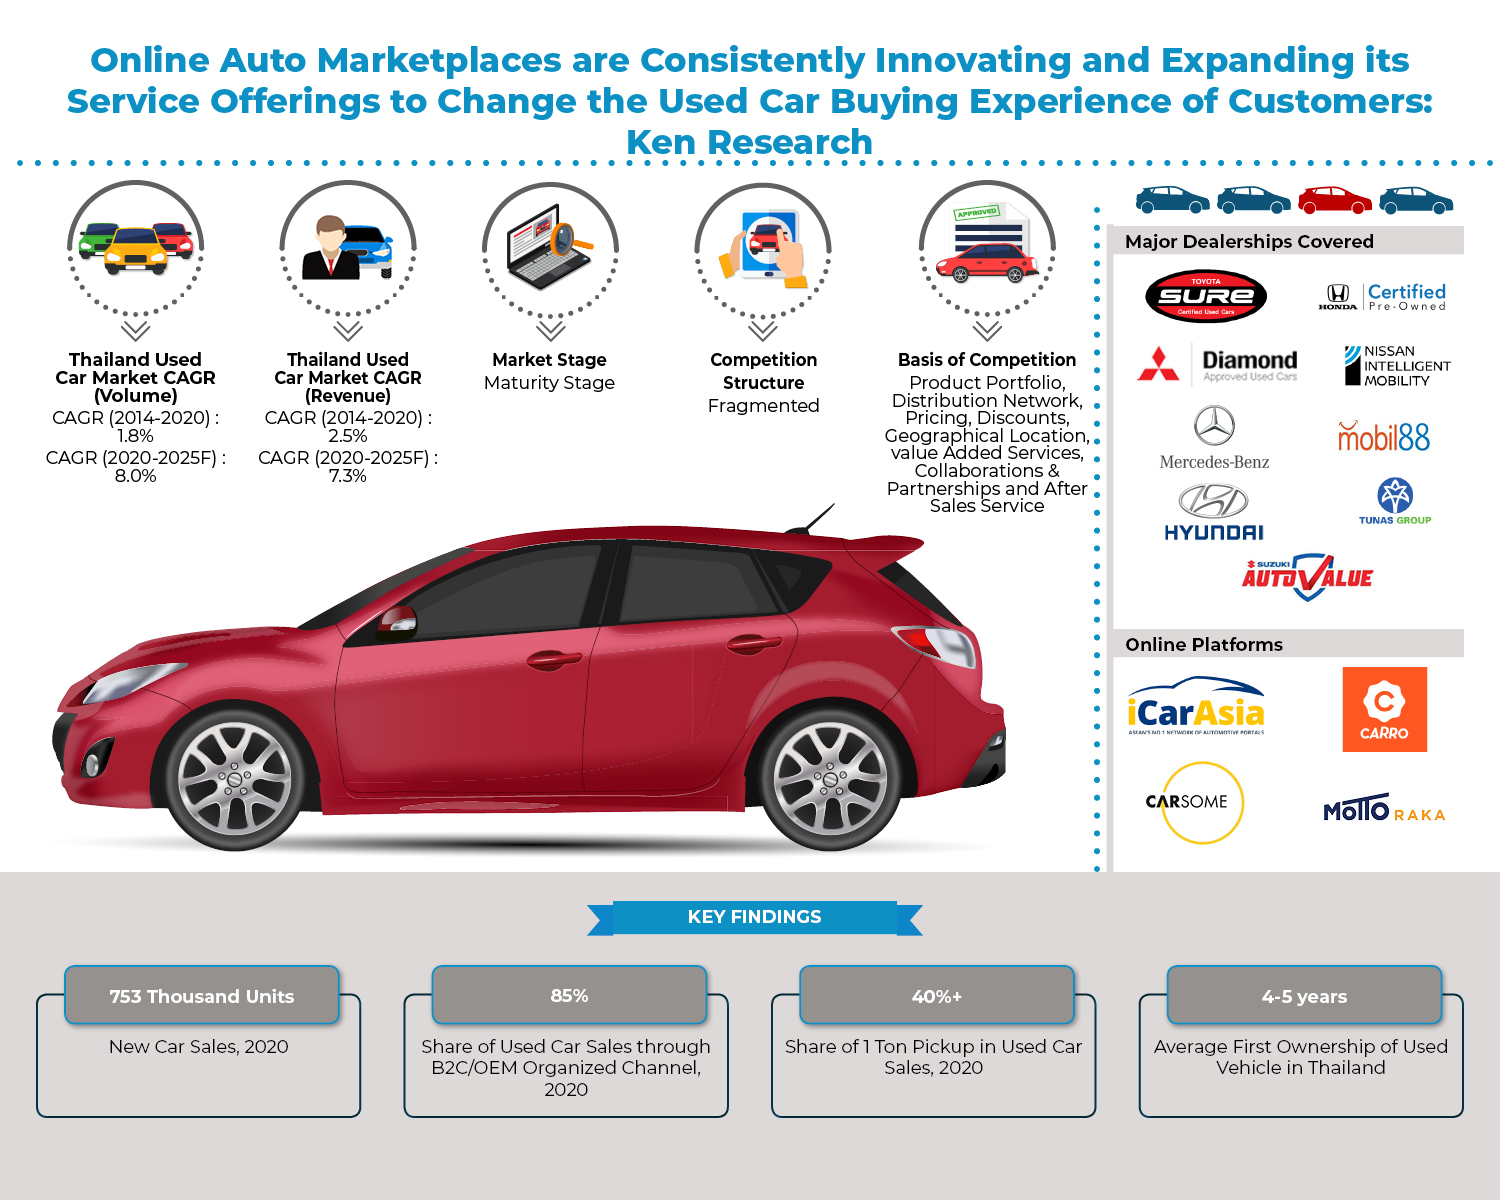 Pandemic Becomes a New Opportunity for Used Car Dealers in Thailand as New Car Sales Drop due to Buyer's Limited Budget: Ken Research